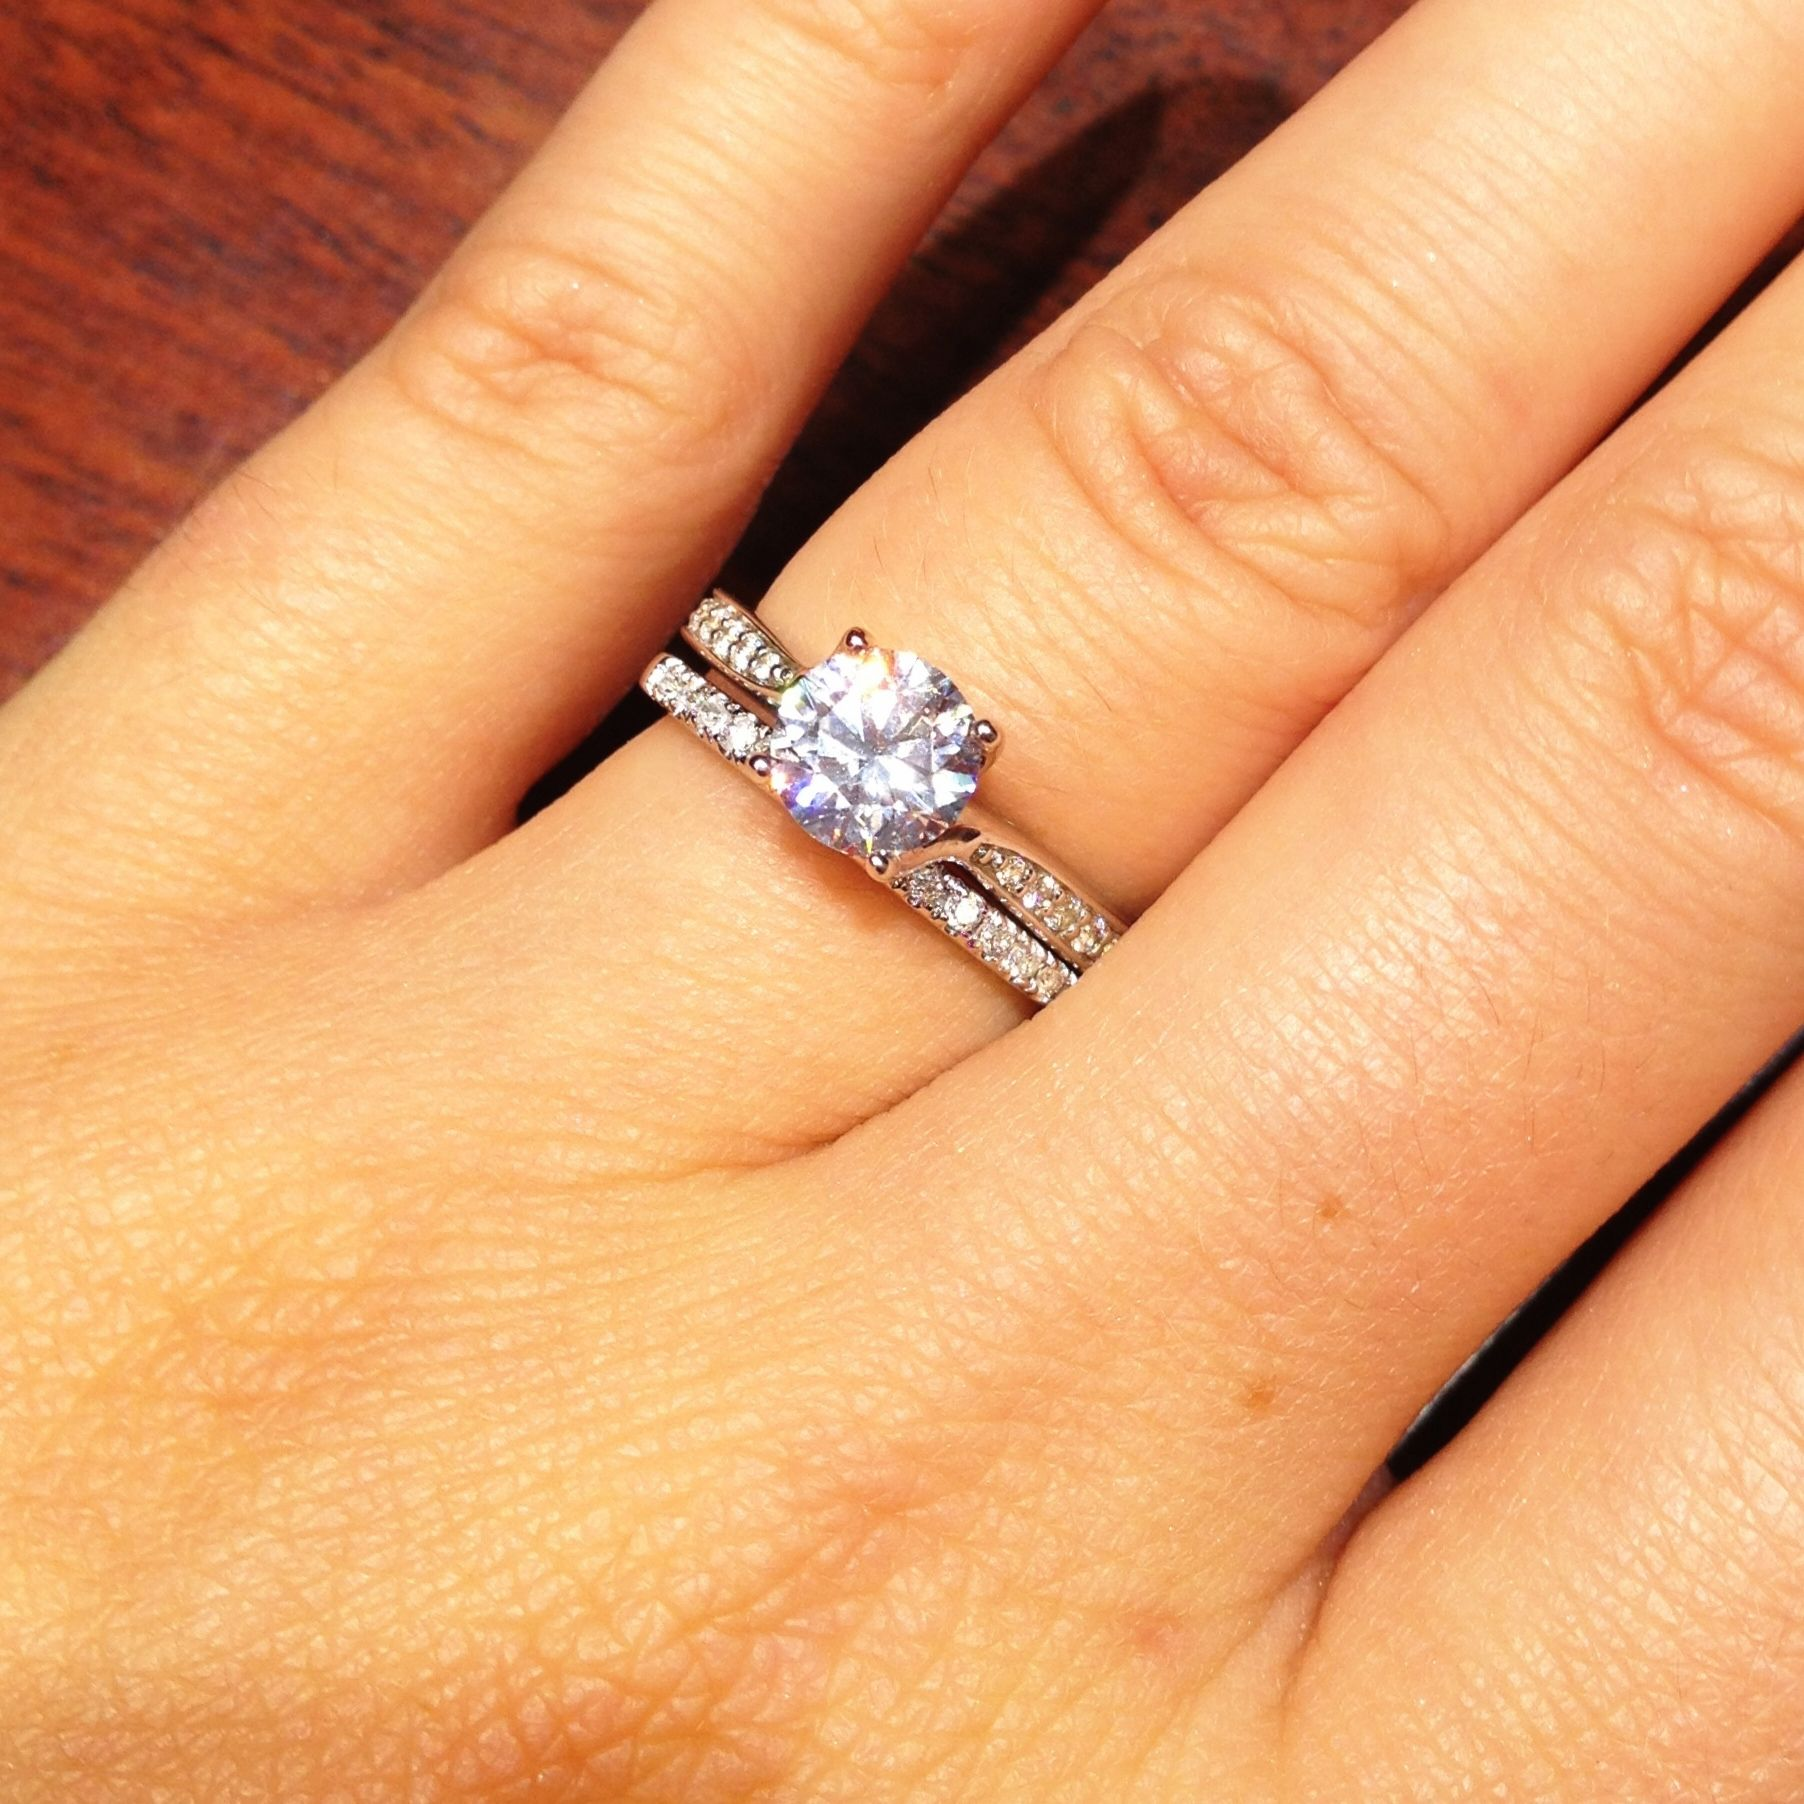 1 Carat Round Solitaire Engagement Ring Wedding Band!